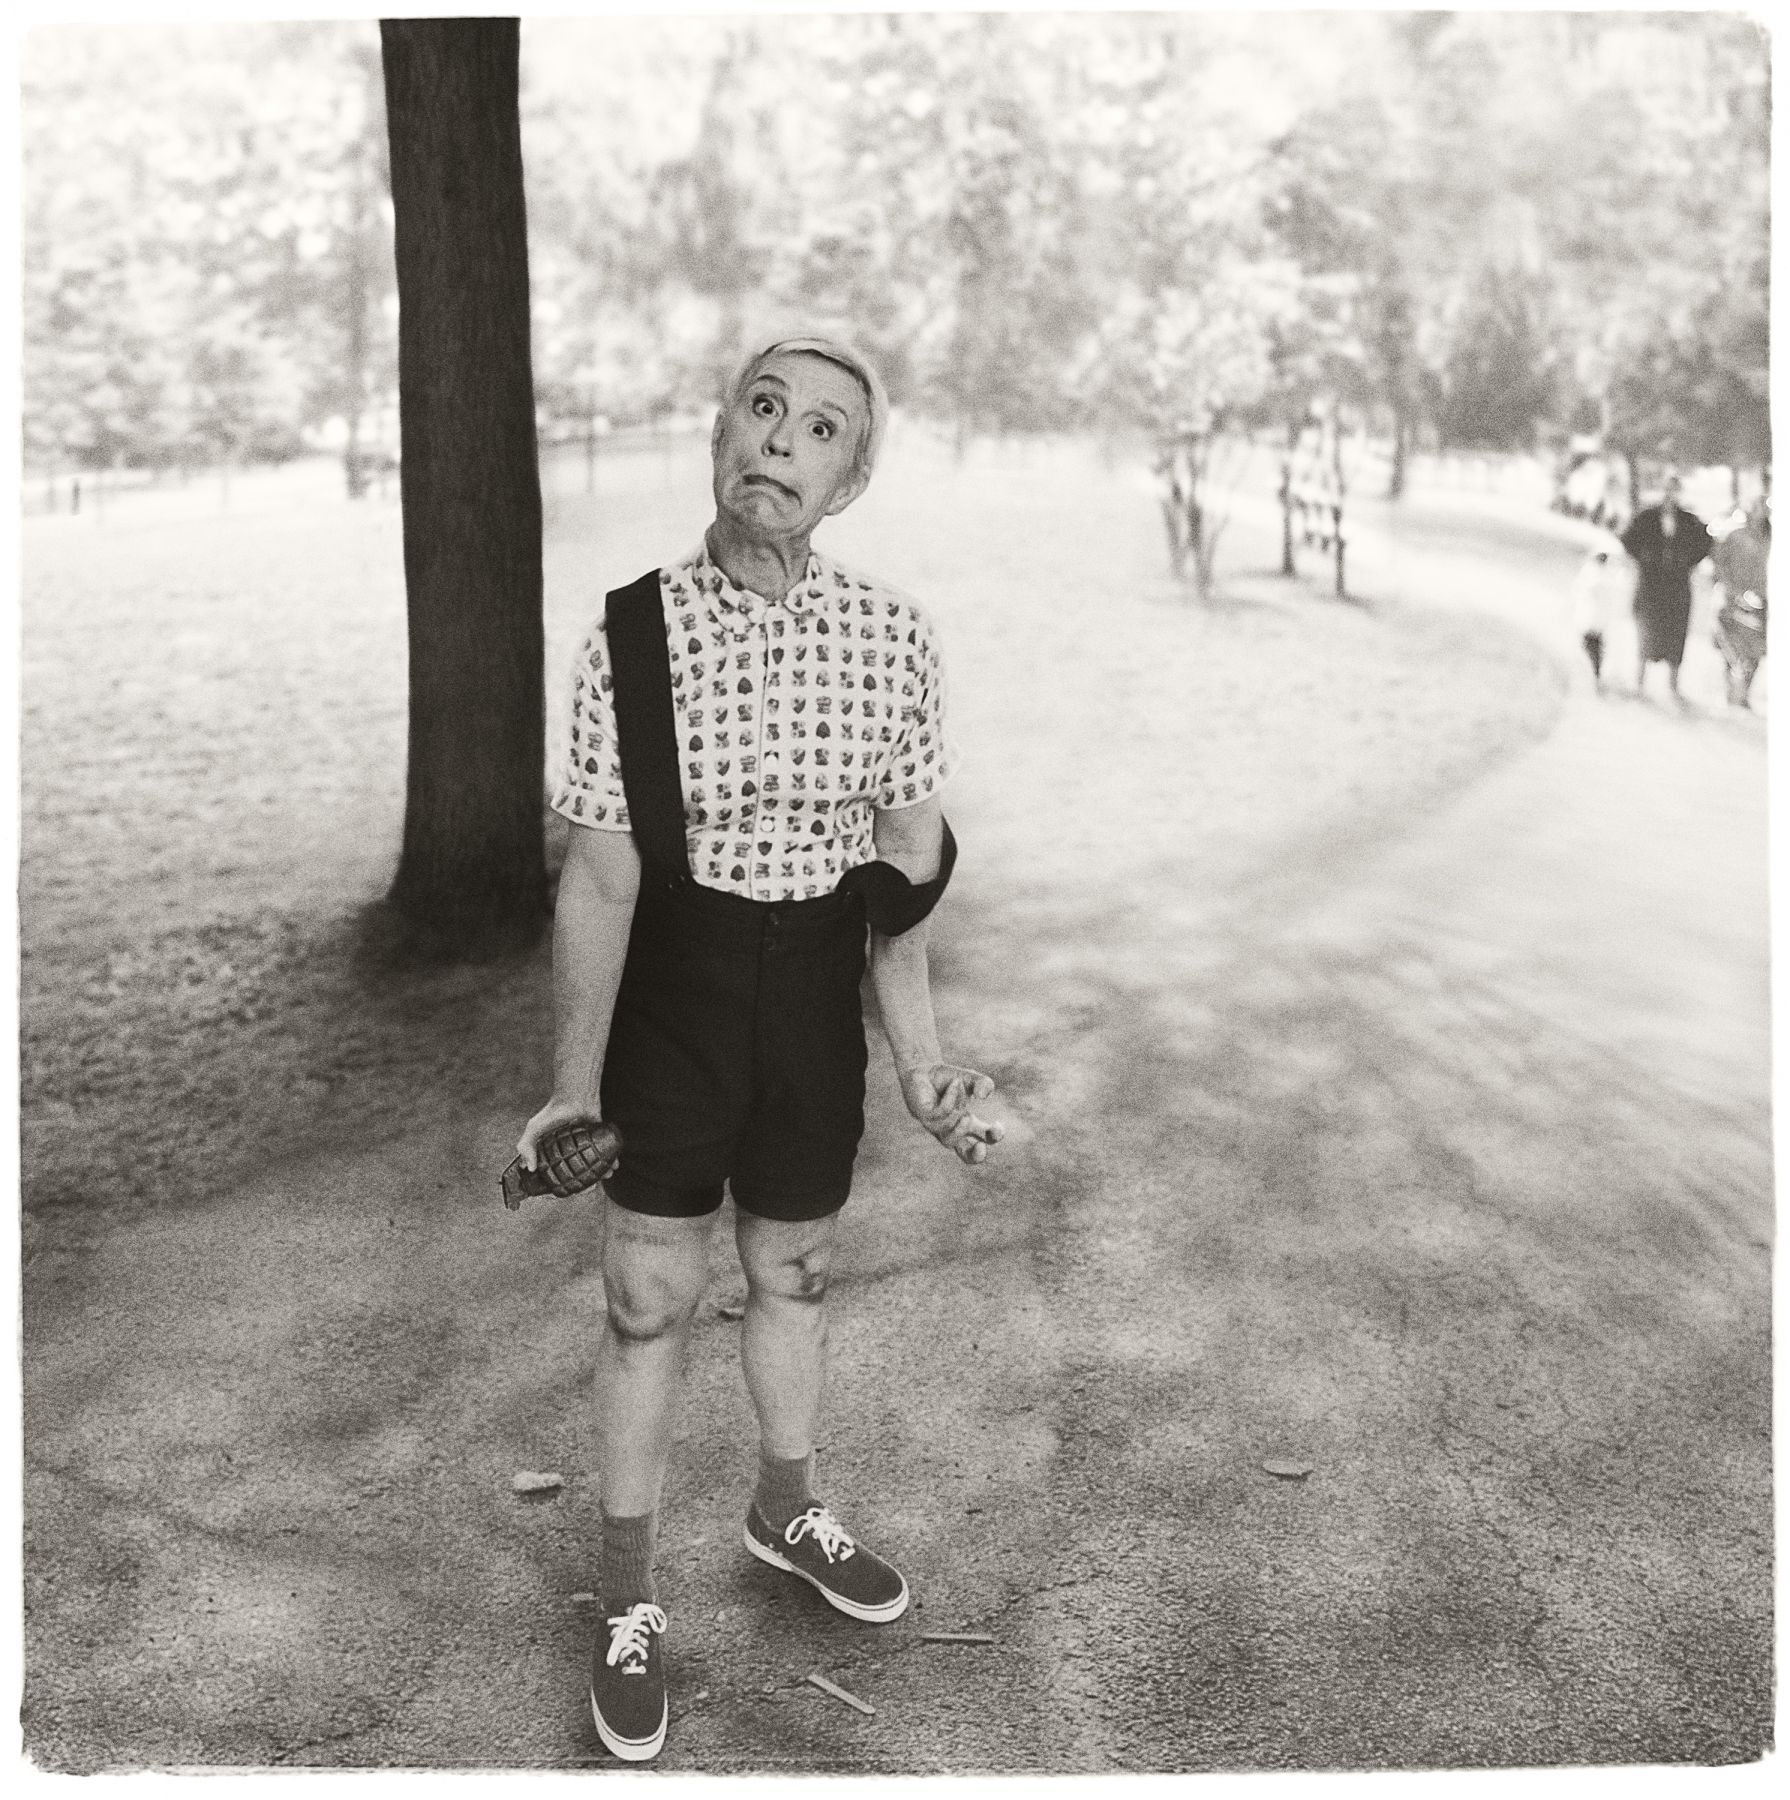 Diane Arbus / Child with a Toy Hand Grenade in Central Park, N.Y.C. (1962), 2014